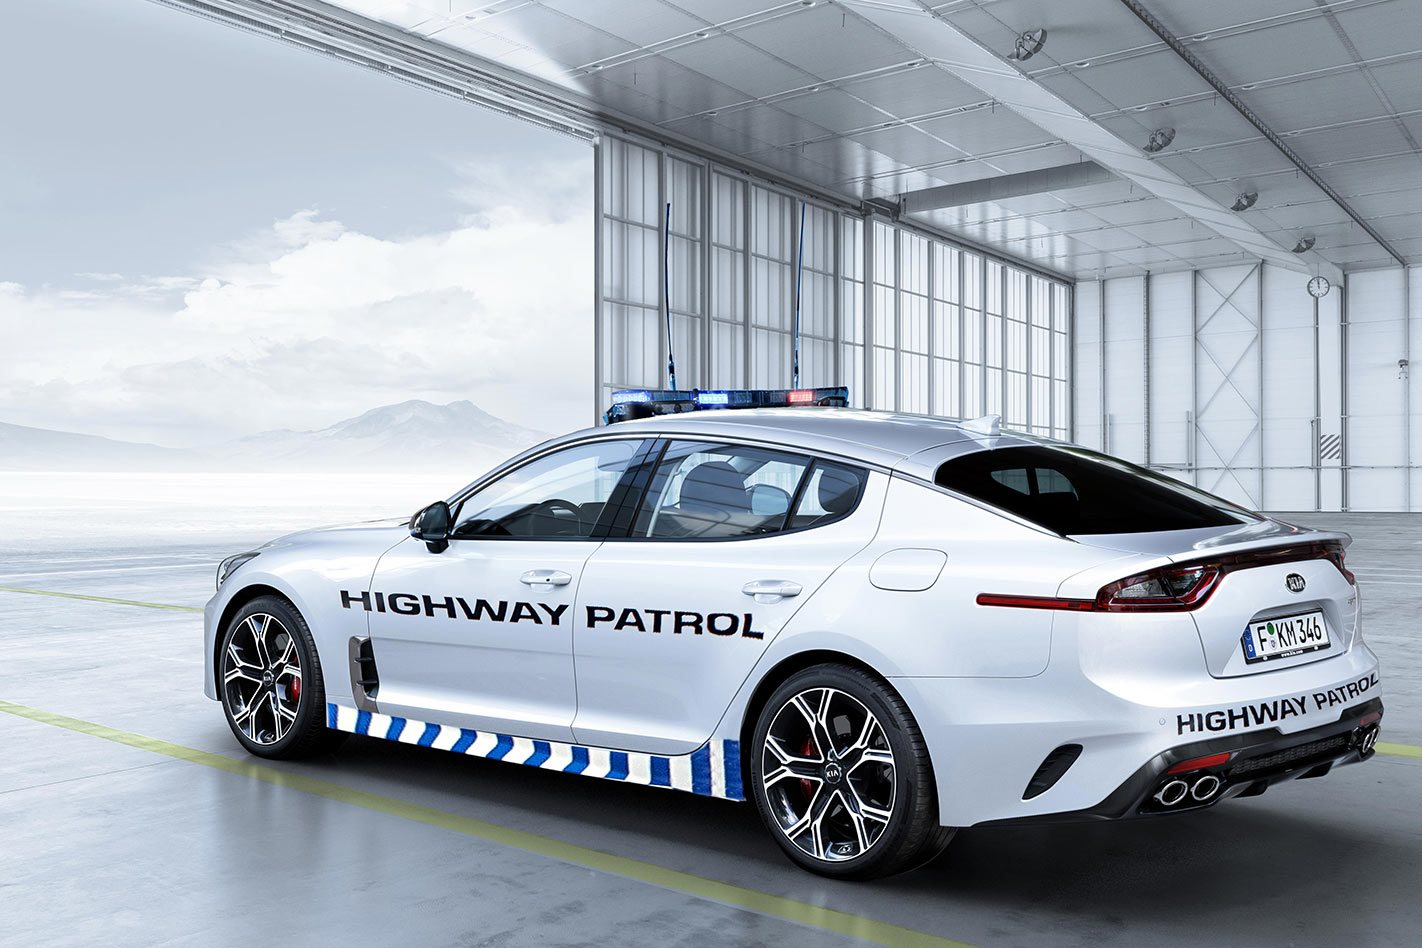 Kia Stinger GT Highway Patrol side